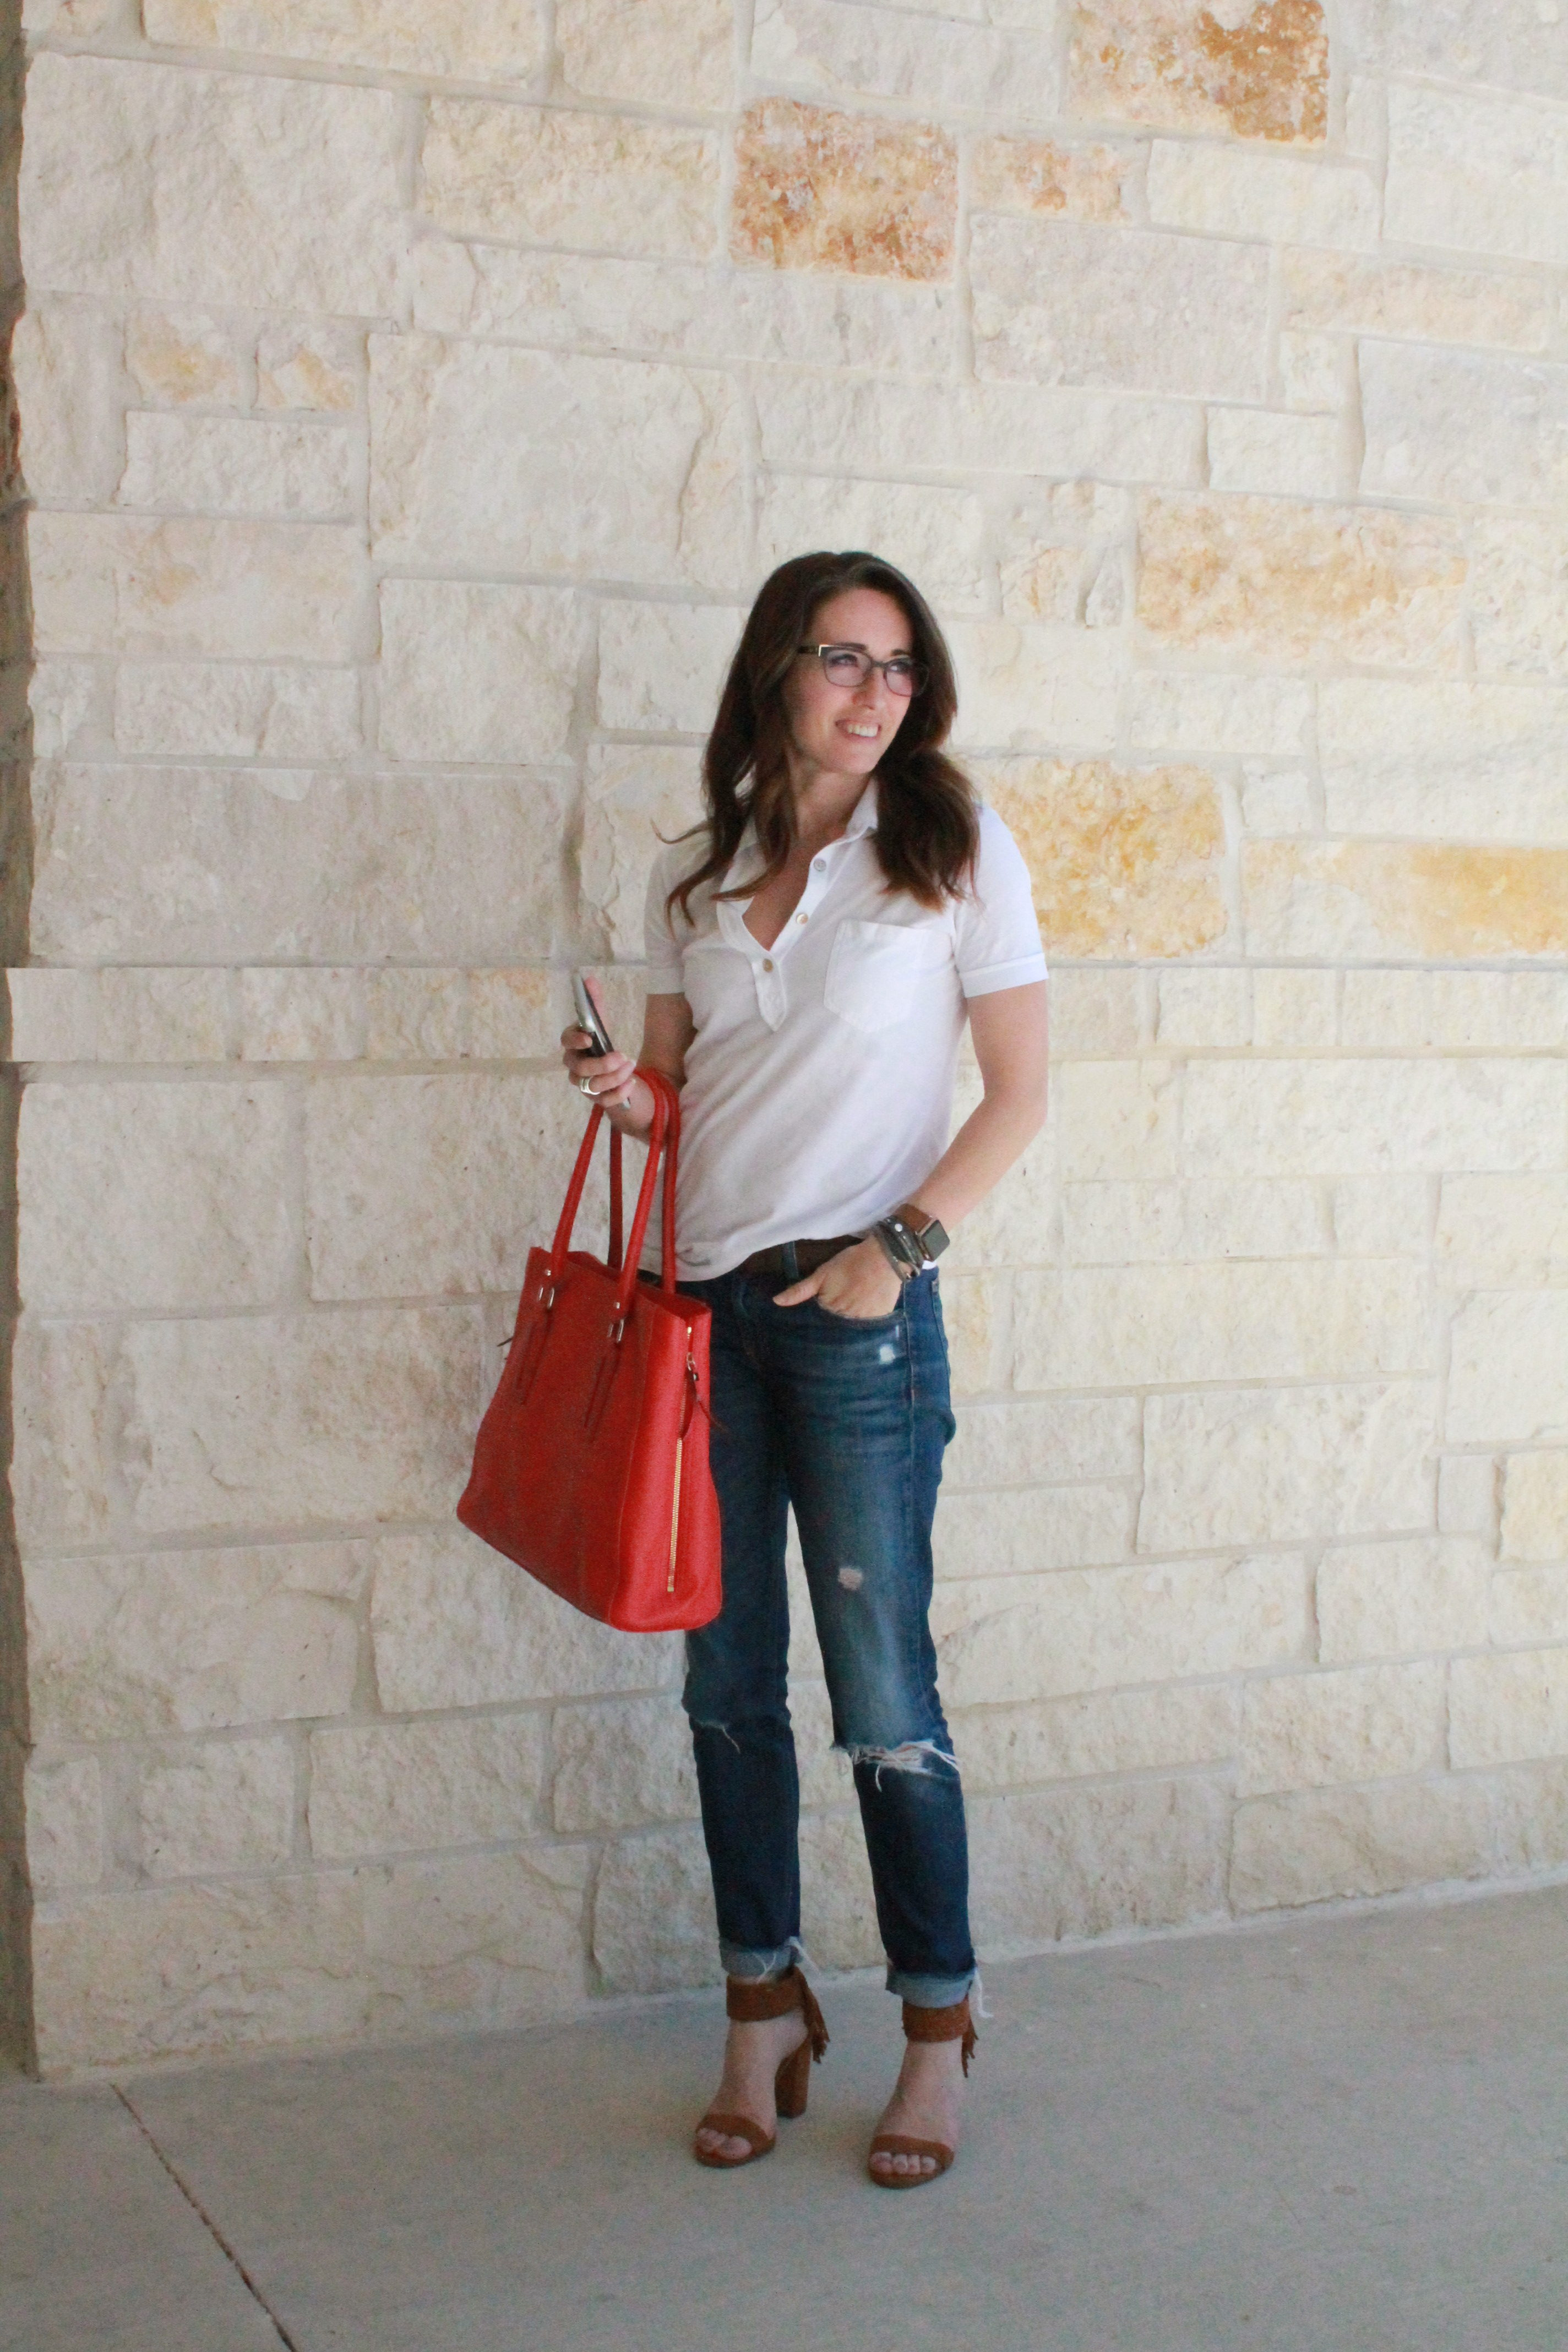 wardrobe stylist, personal stylist, method39, everyday street style, mom on the go, casual, classic, my style, red, white, blue, heels, today's look